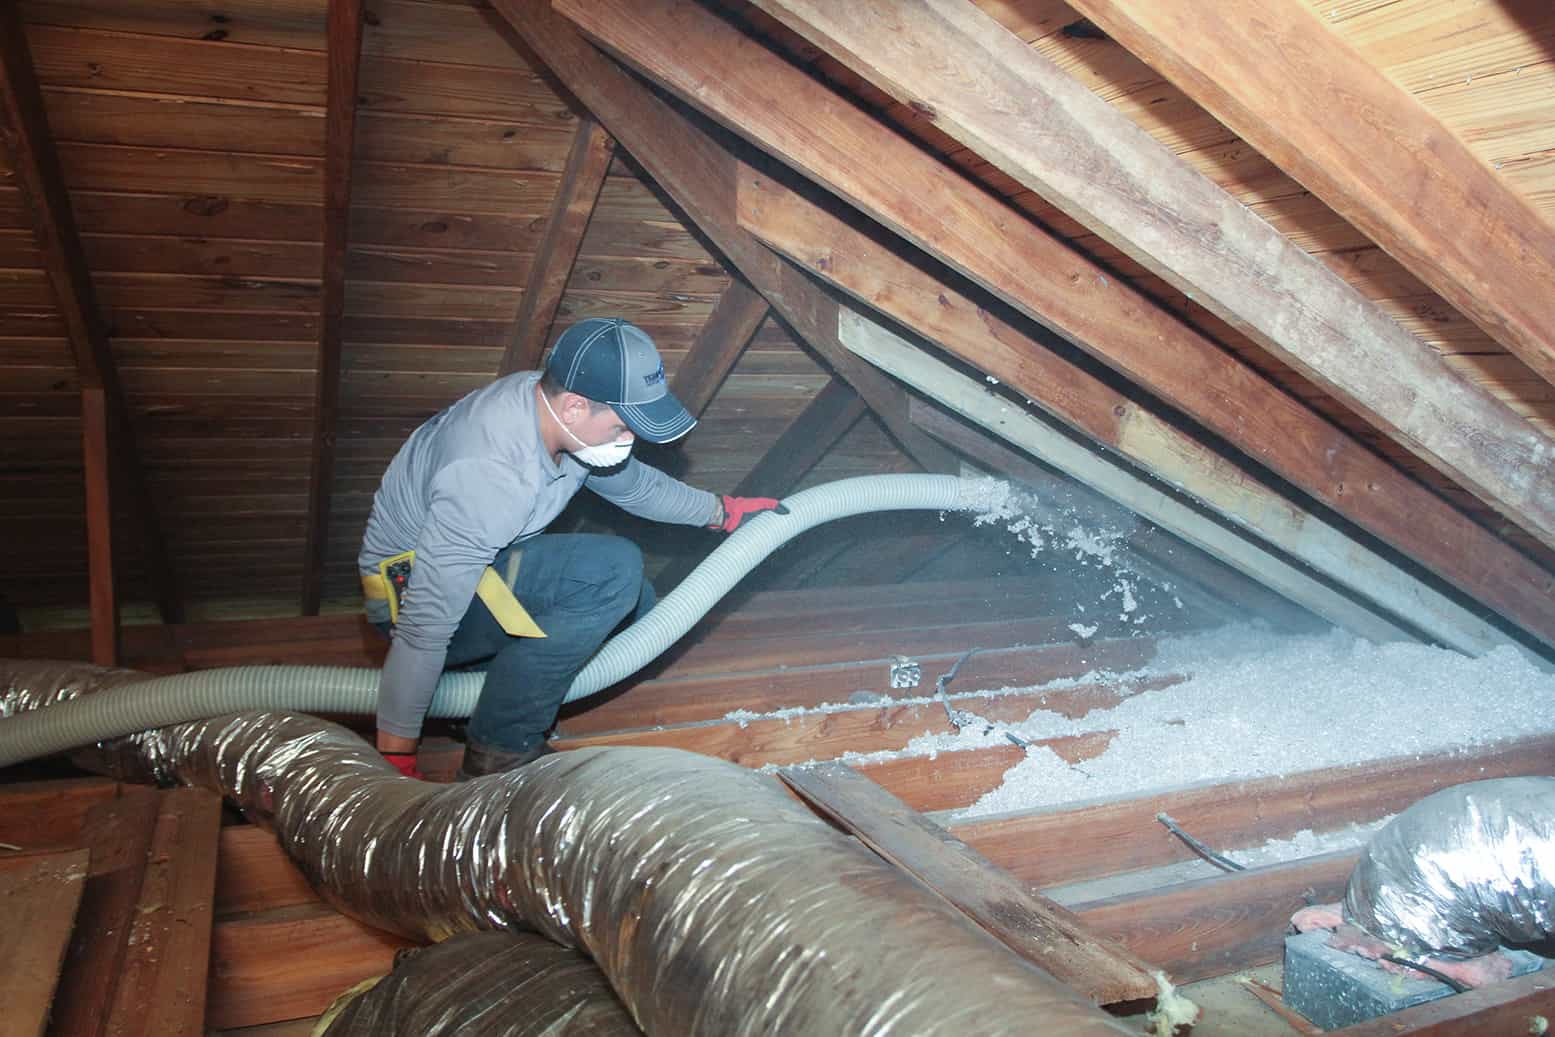 Tempco pest control team restoring an attic.